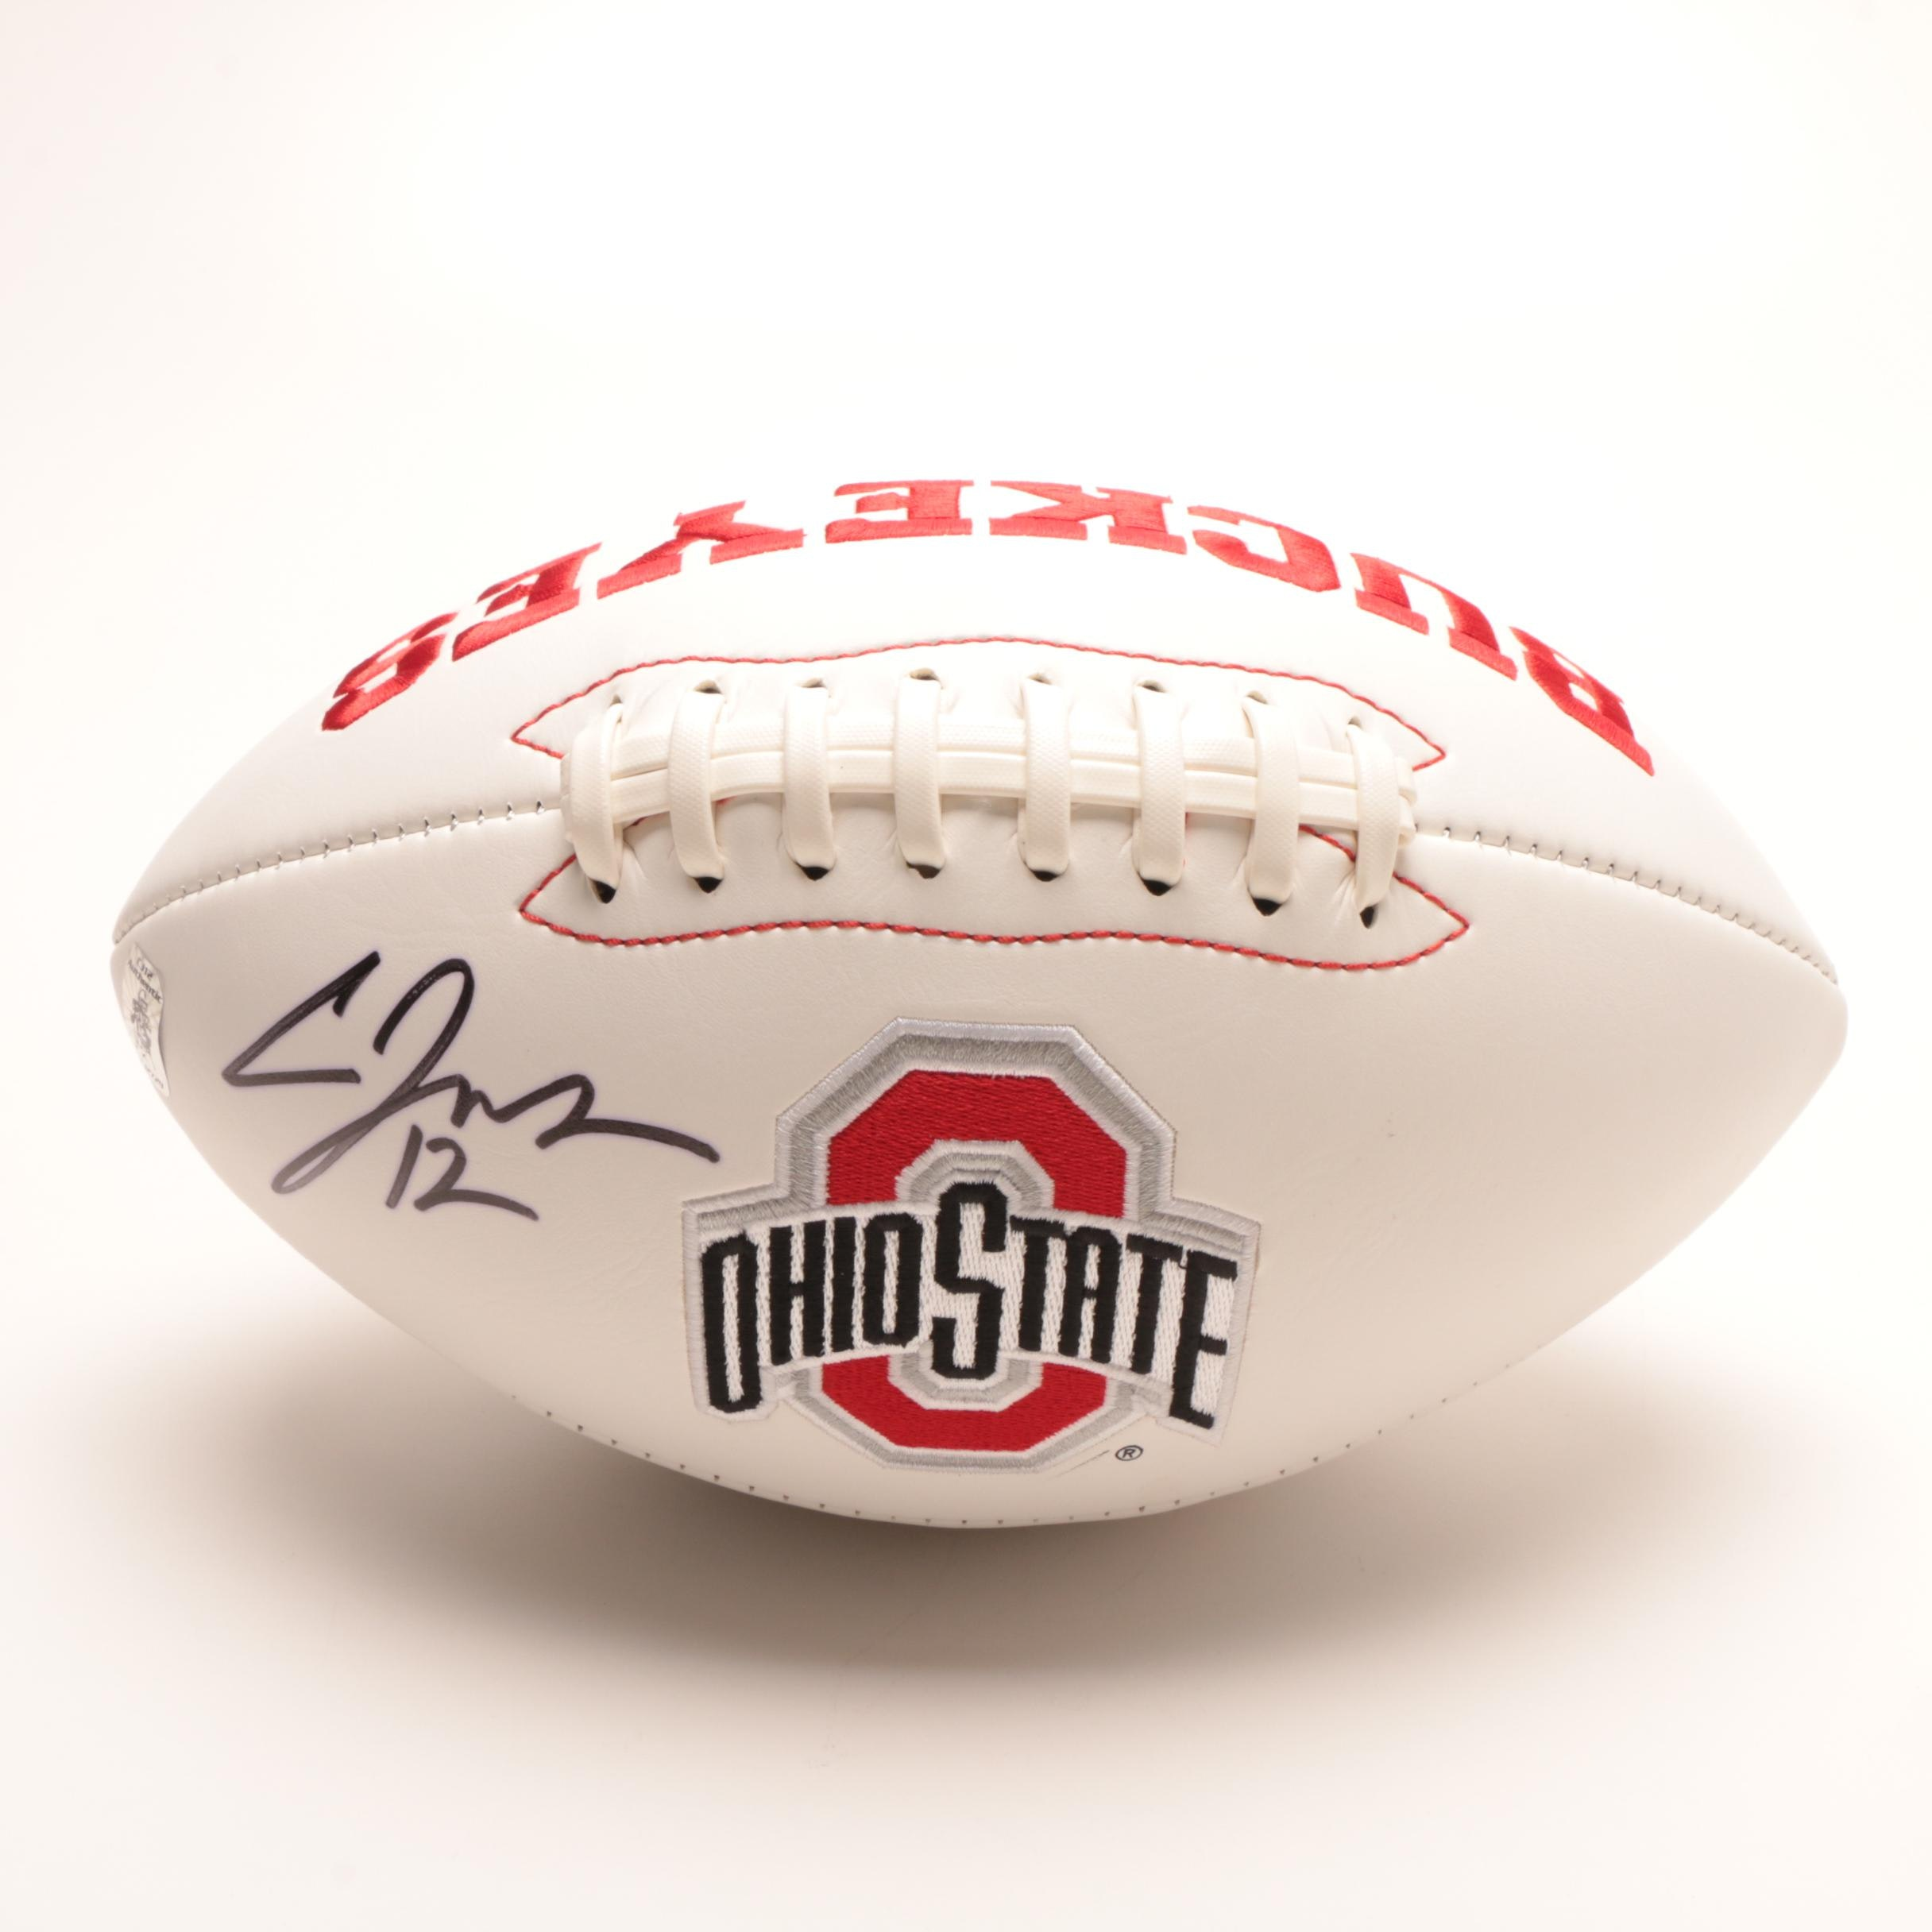 Cardale Jones Signed Ohio State Football With COA